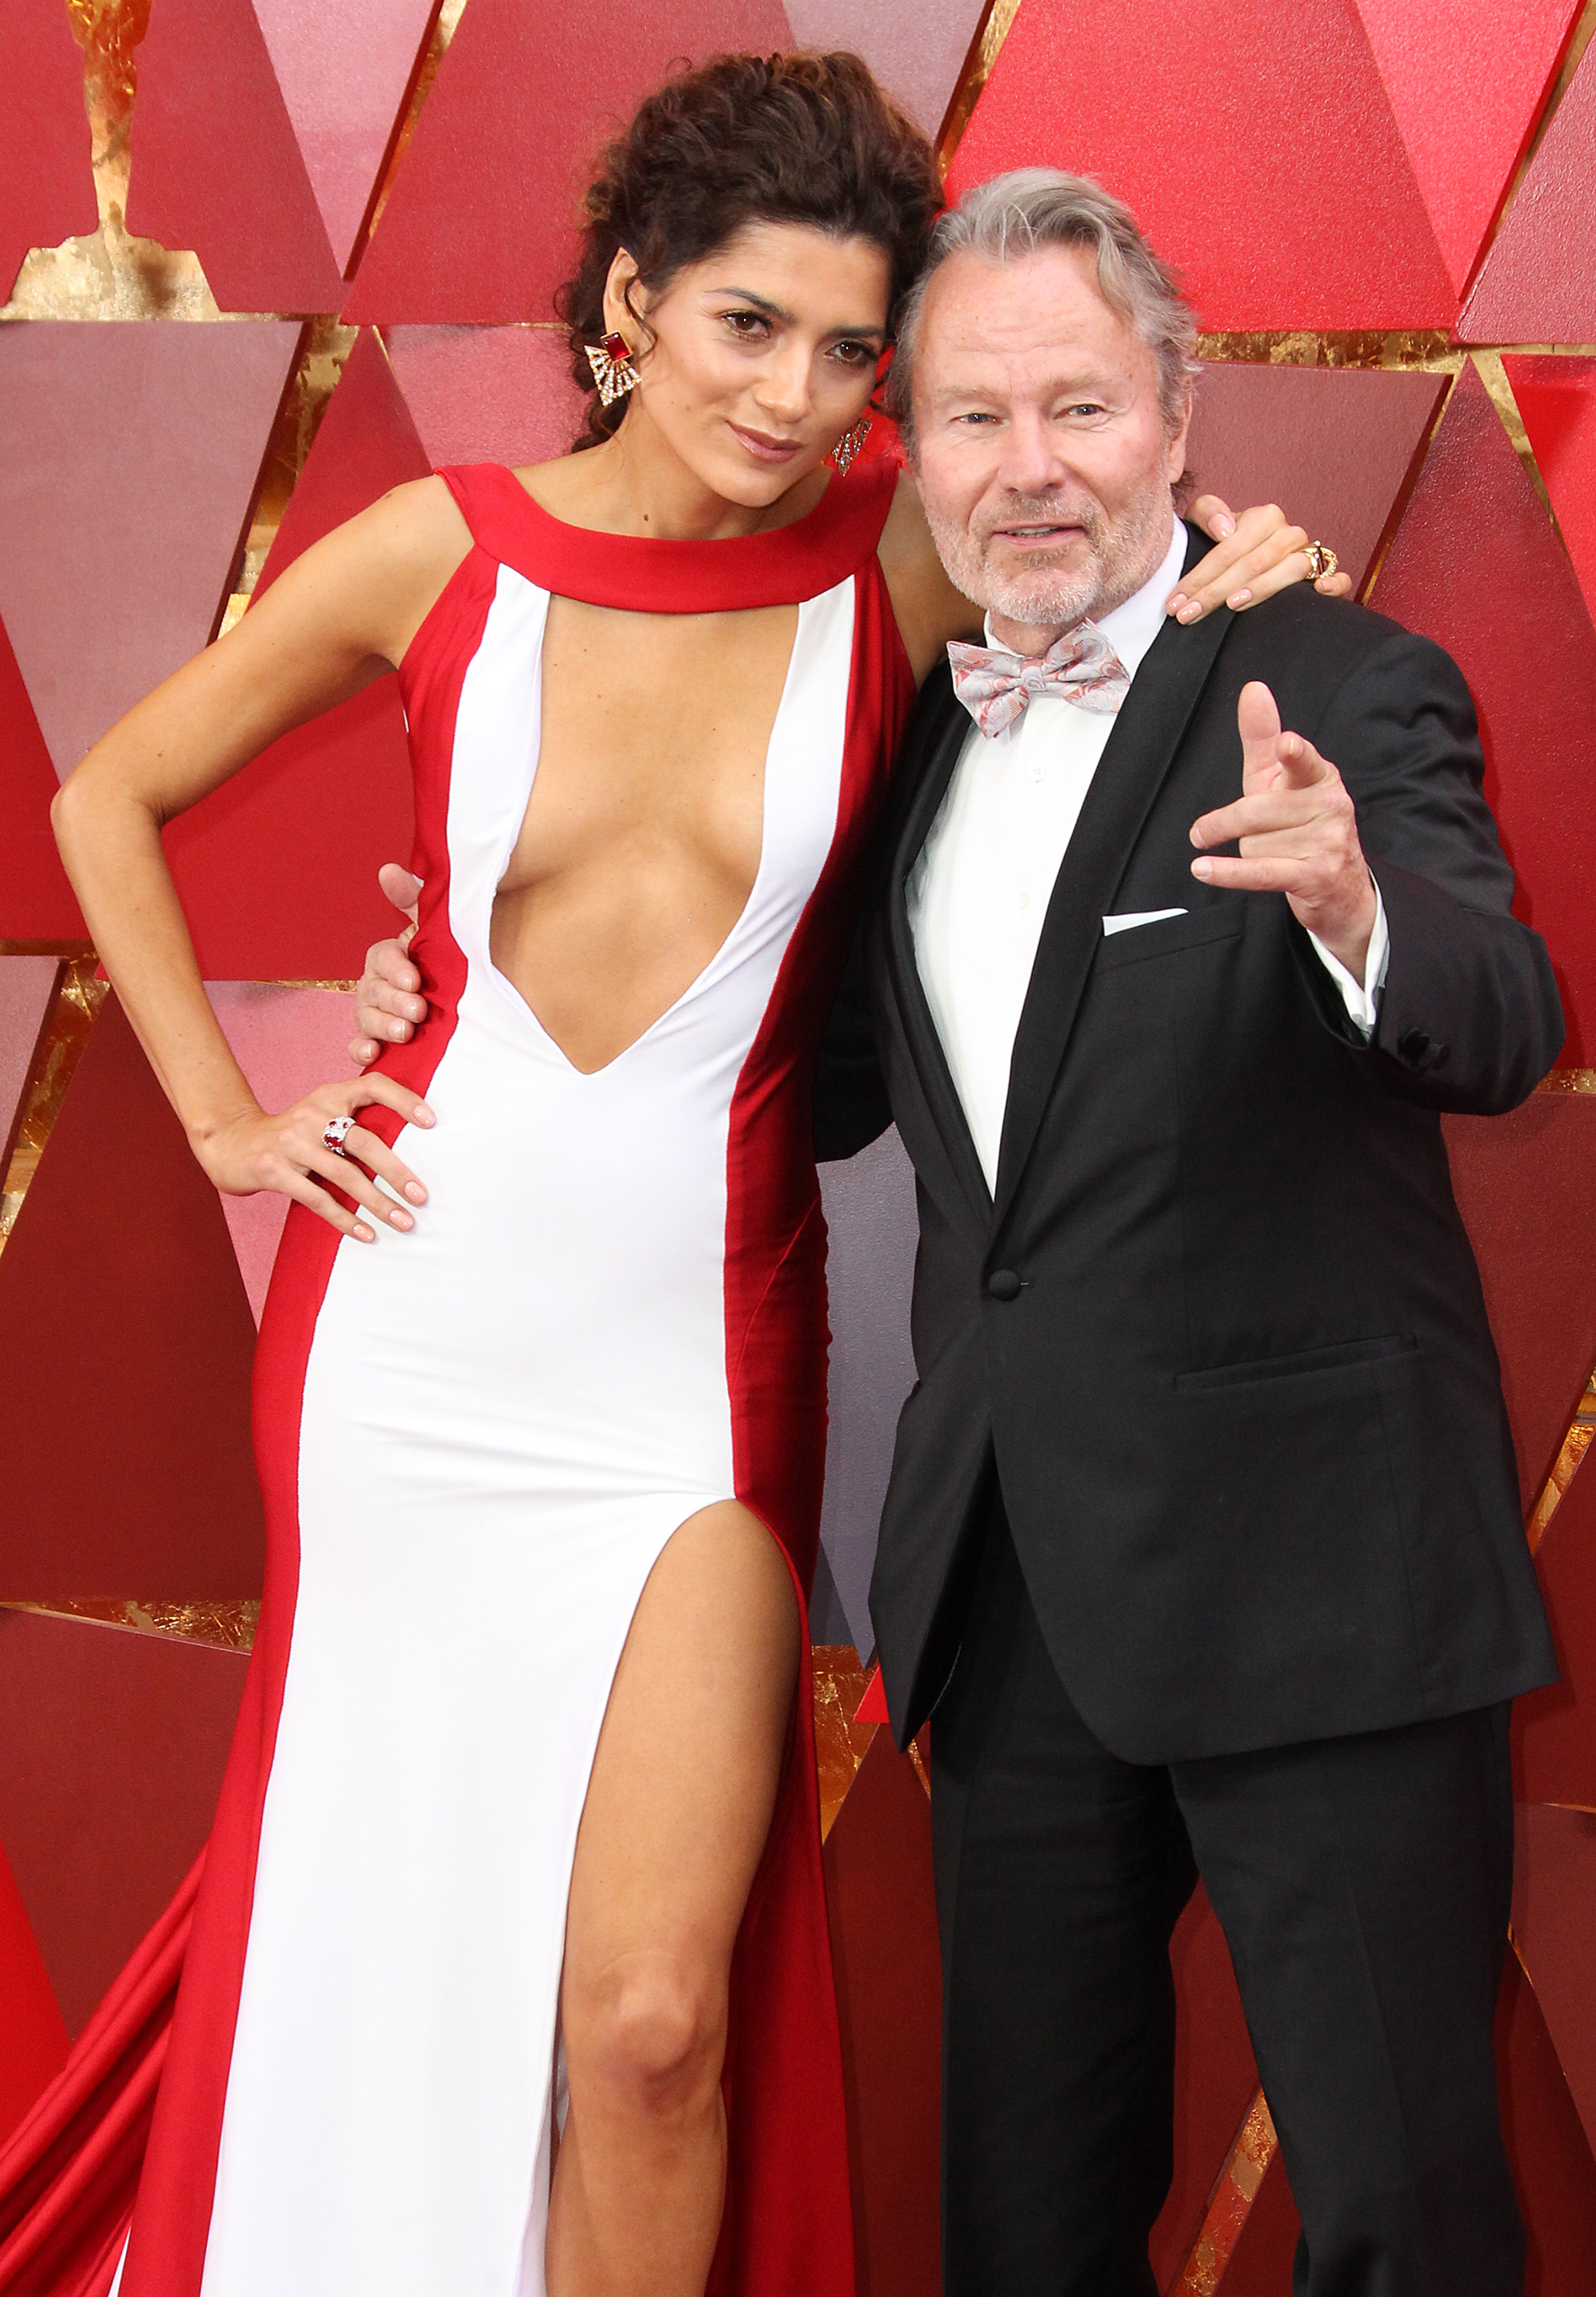 Blanca Blanco and John Savage{&amp;nbsp;}arrives at the 90th Annual Academy Awards (Oscars) held at the Dolby Theater in Hollywood, California. (Image: Adriana M. Barraza/WENN.com){&amp;nbsp;}<p></p>